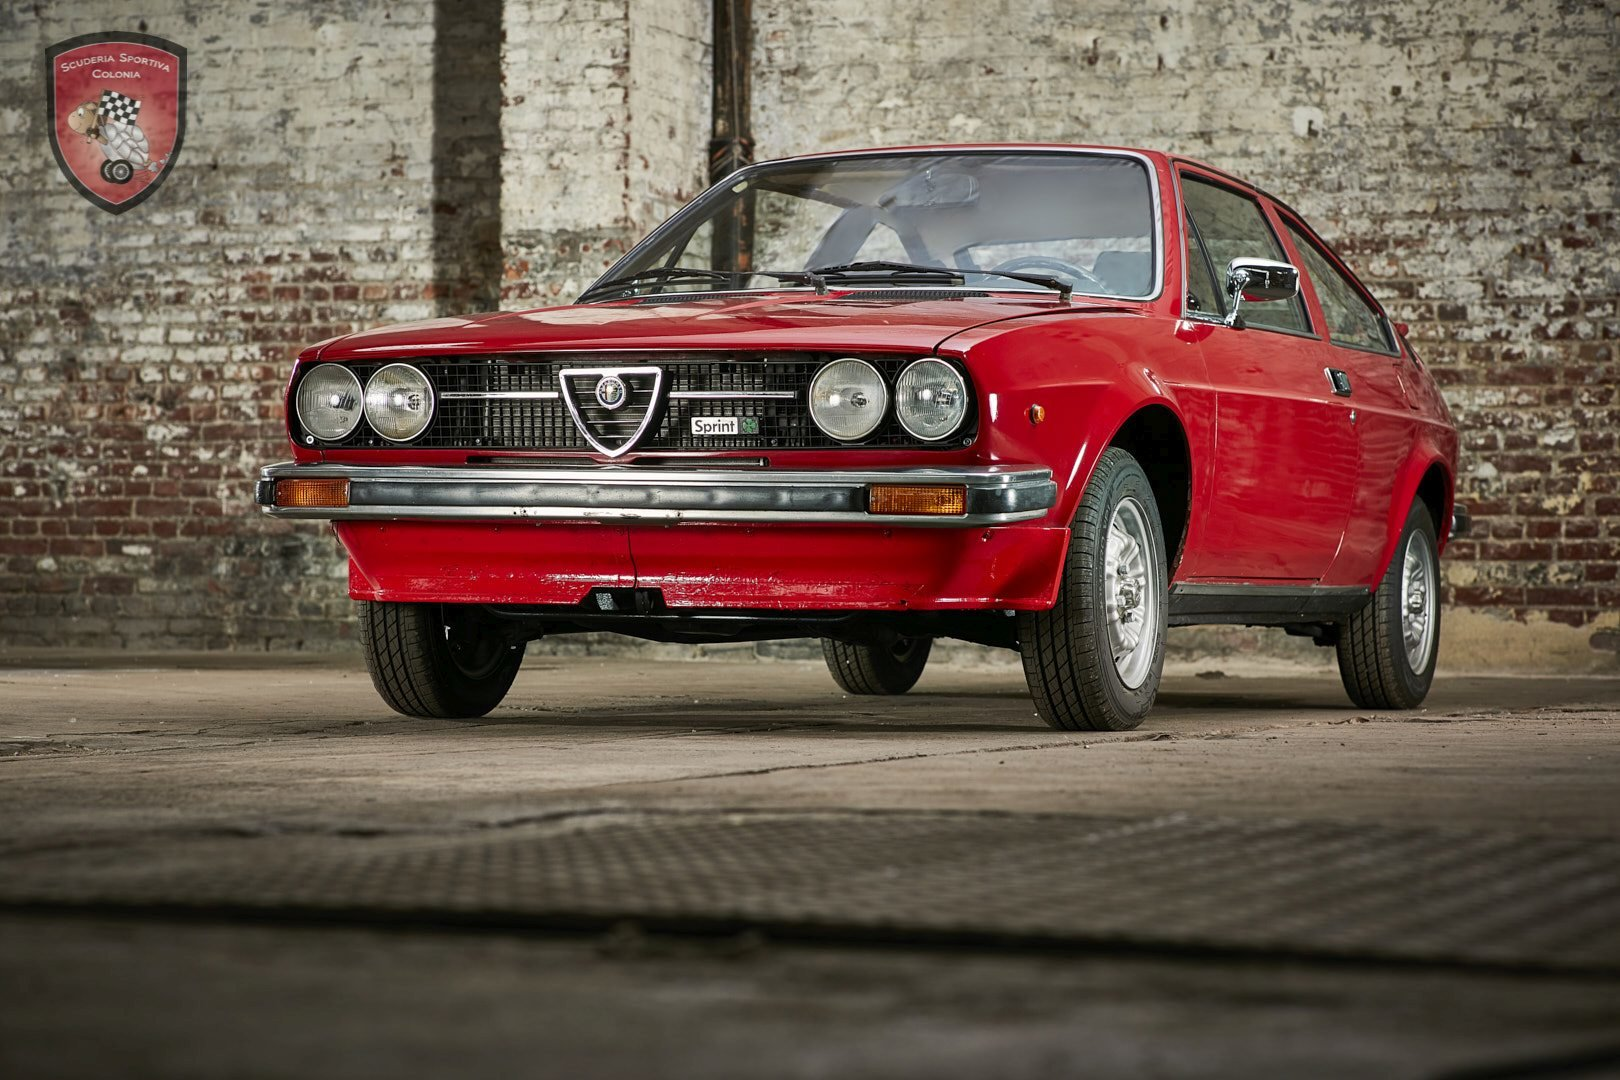 1978 Alfasud Sprint 1.3 For Sale (picture 1 of 6)